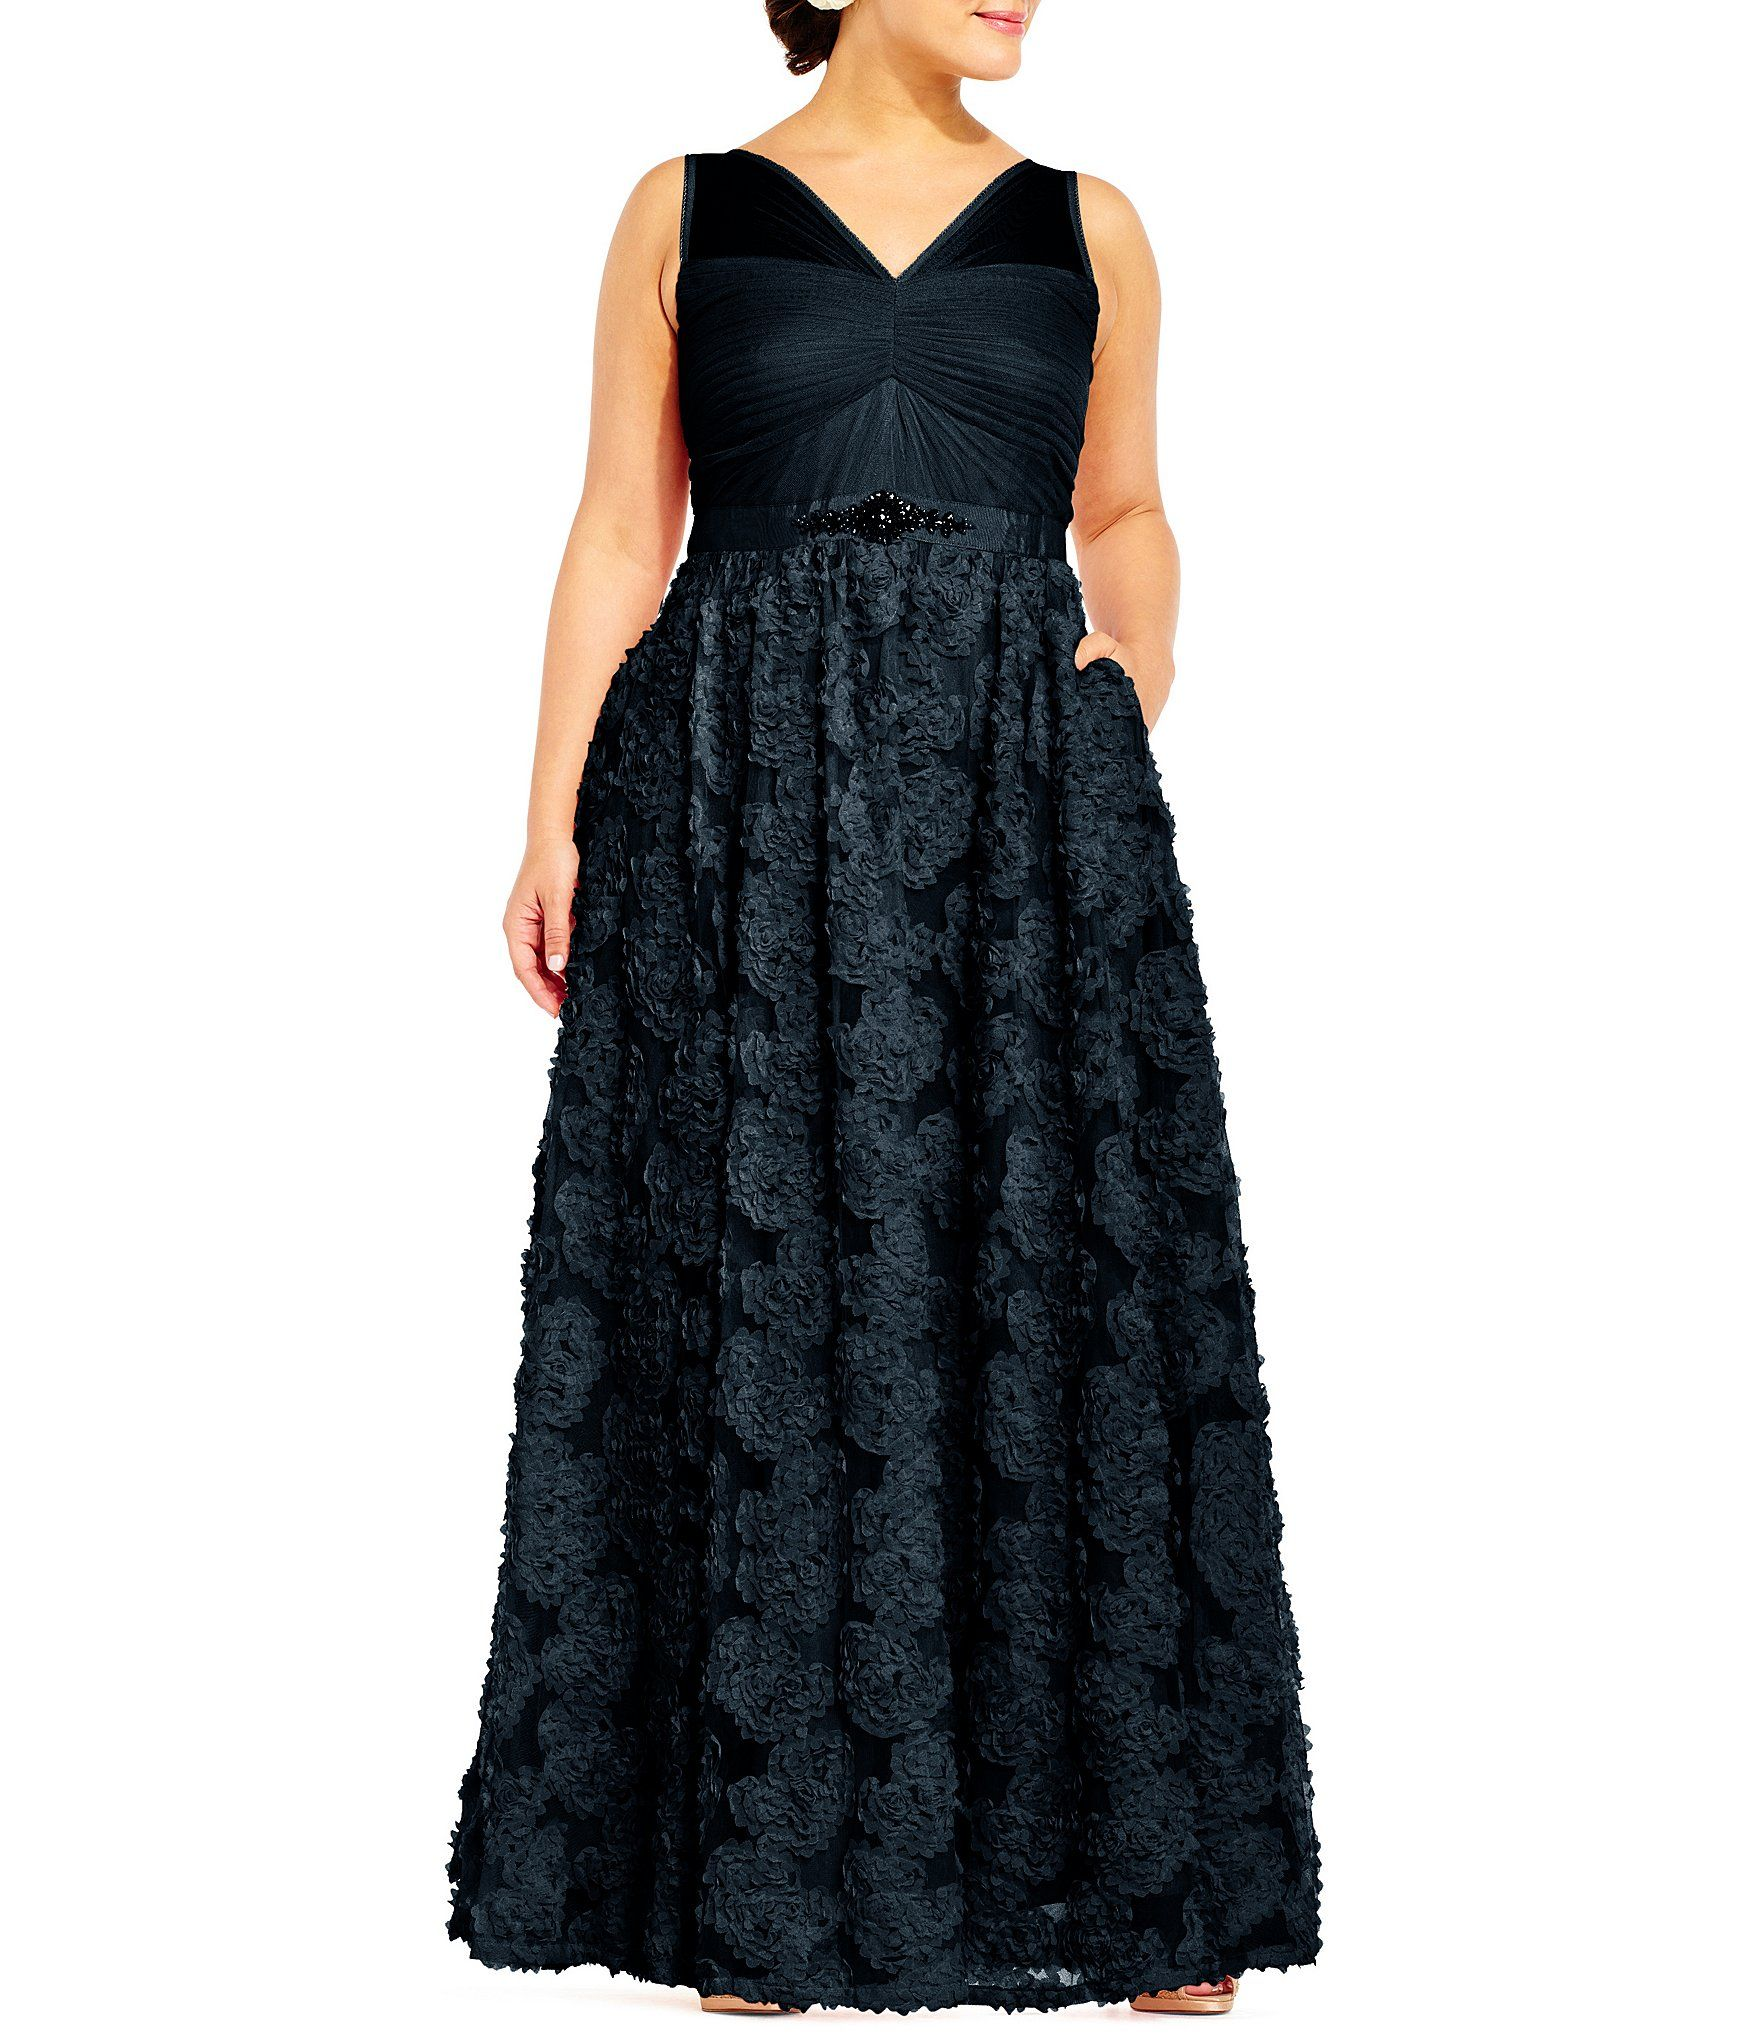 78b74fda38a57 Shop for Adrianna Papell Plus Tulle Chiffon Ballgown at Dillards.com. Visit  Dillards.com to find clothing